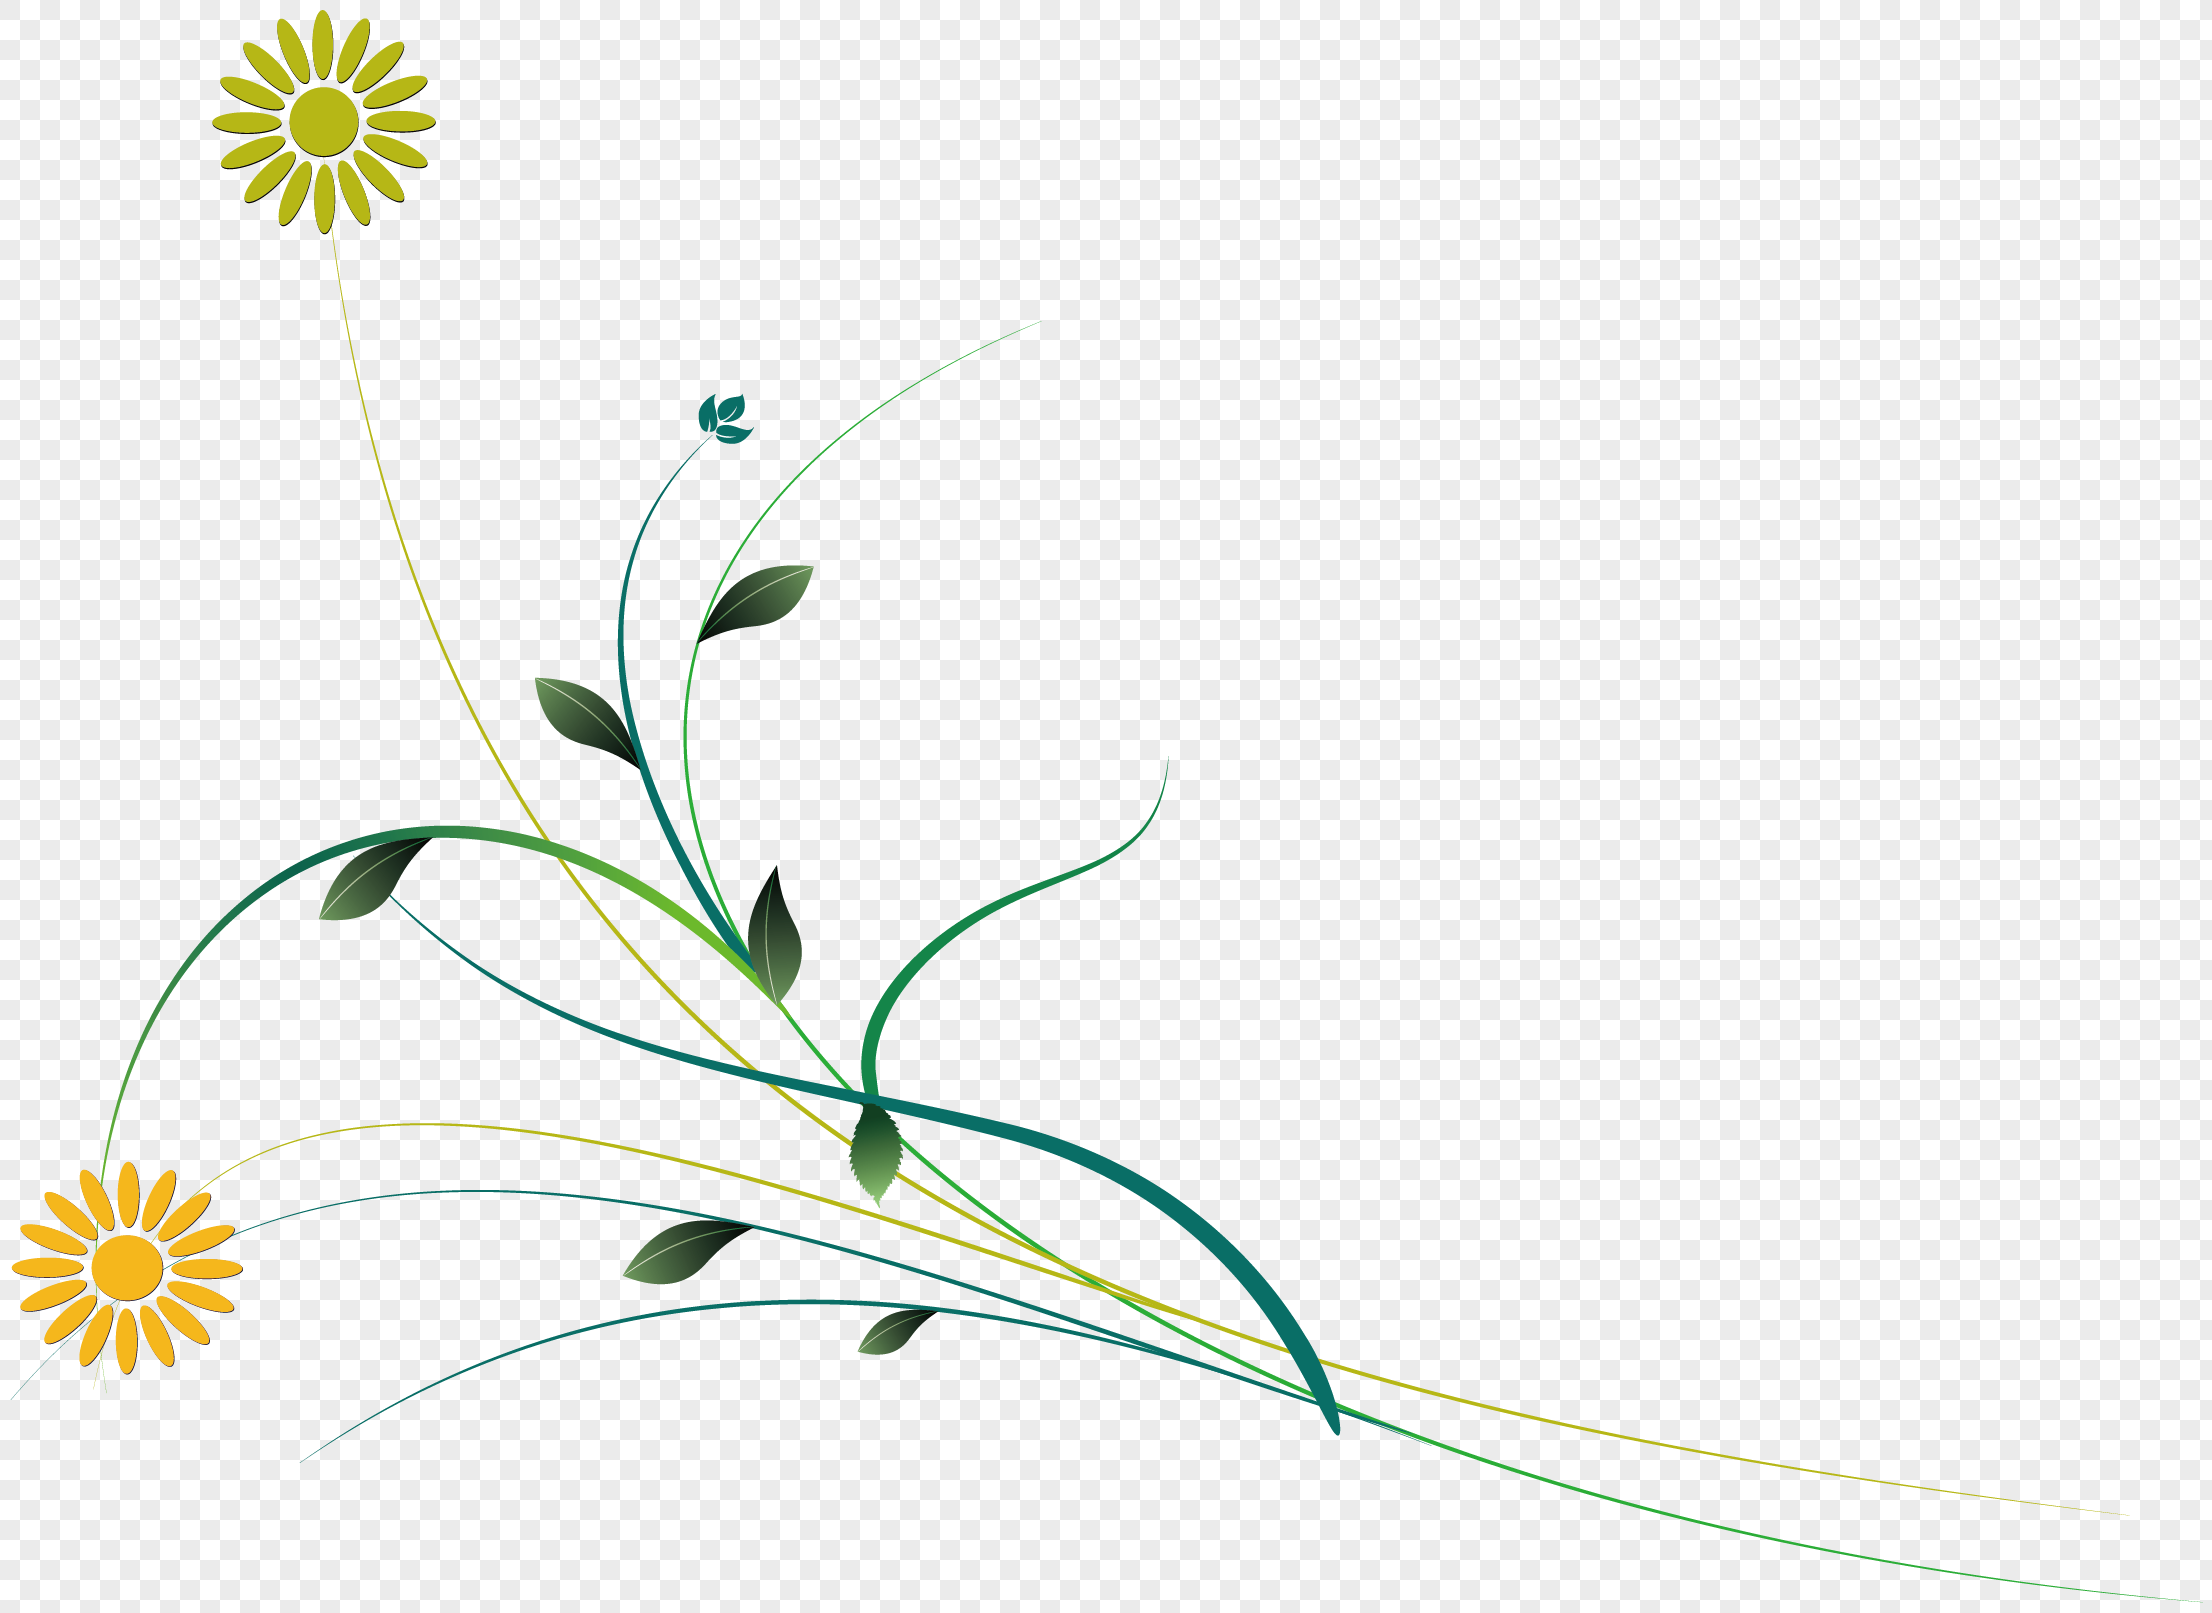 2212x1613 Vector Vines Graphics Image Picture Free Download